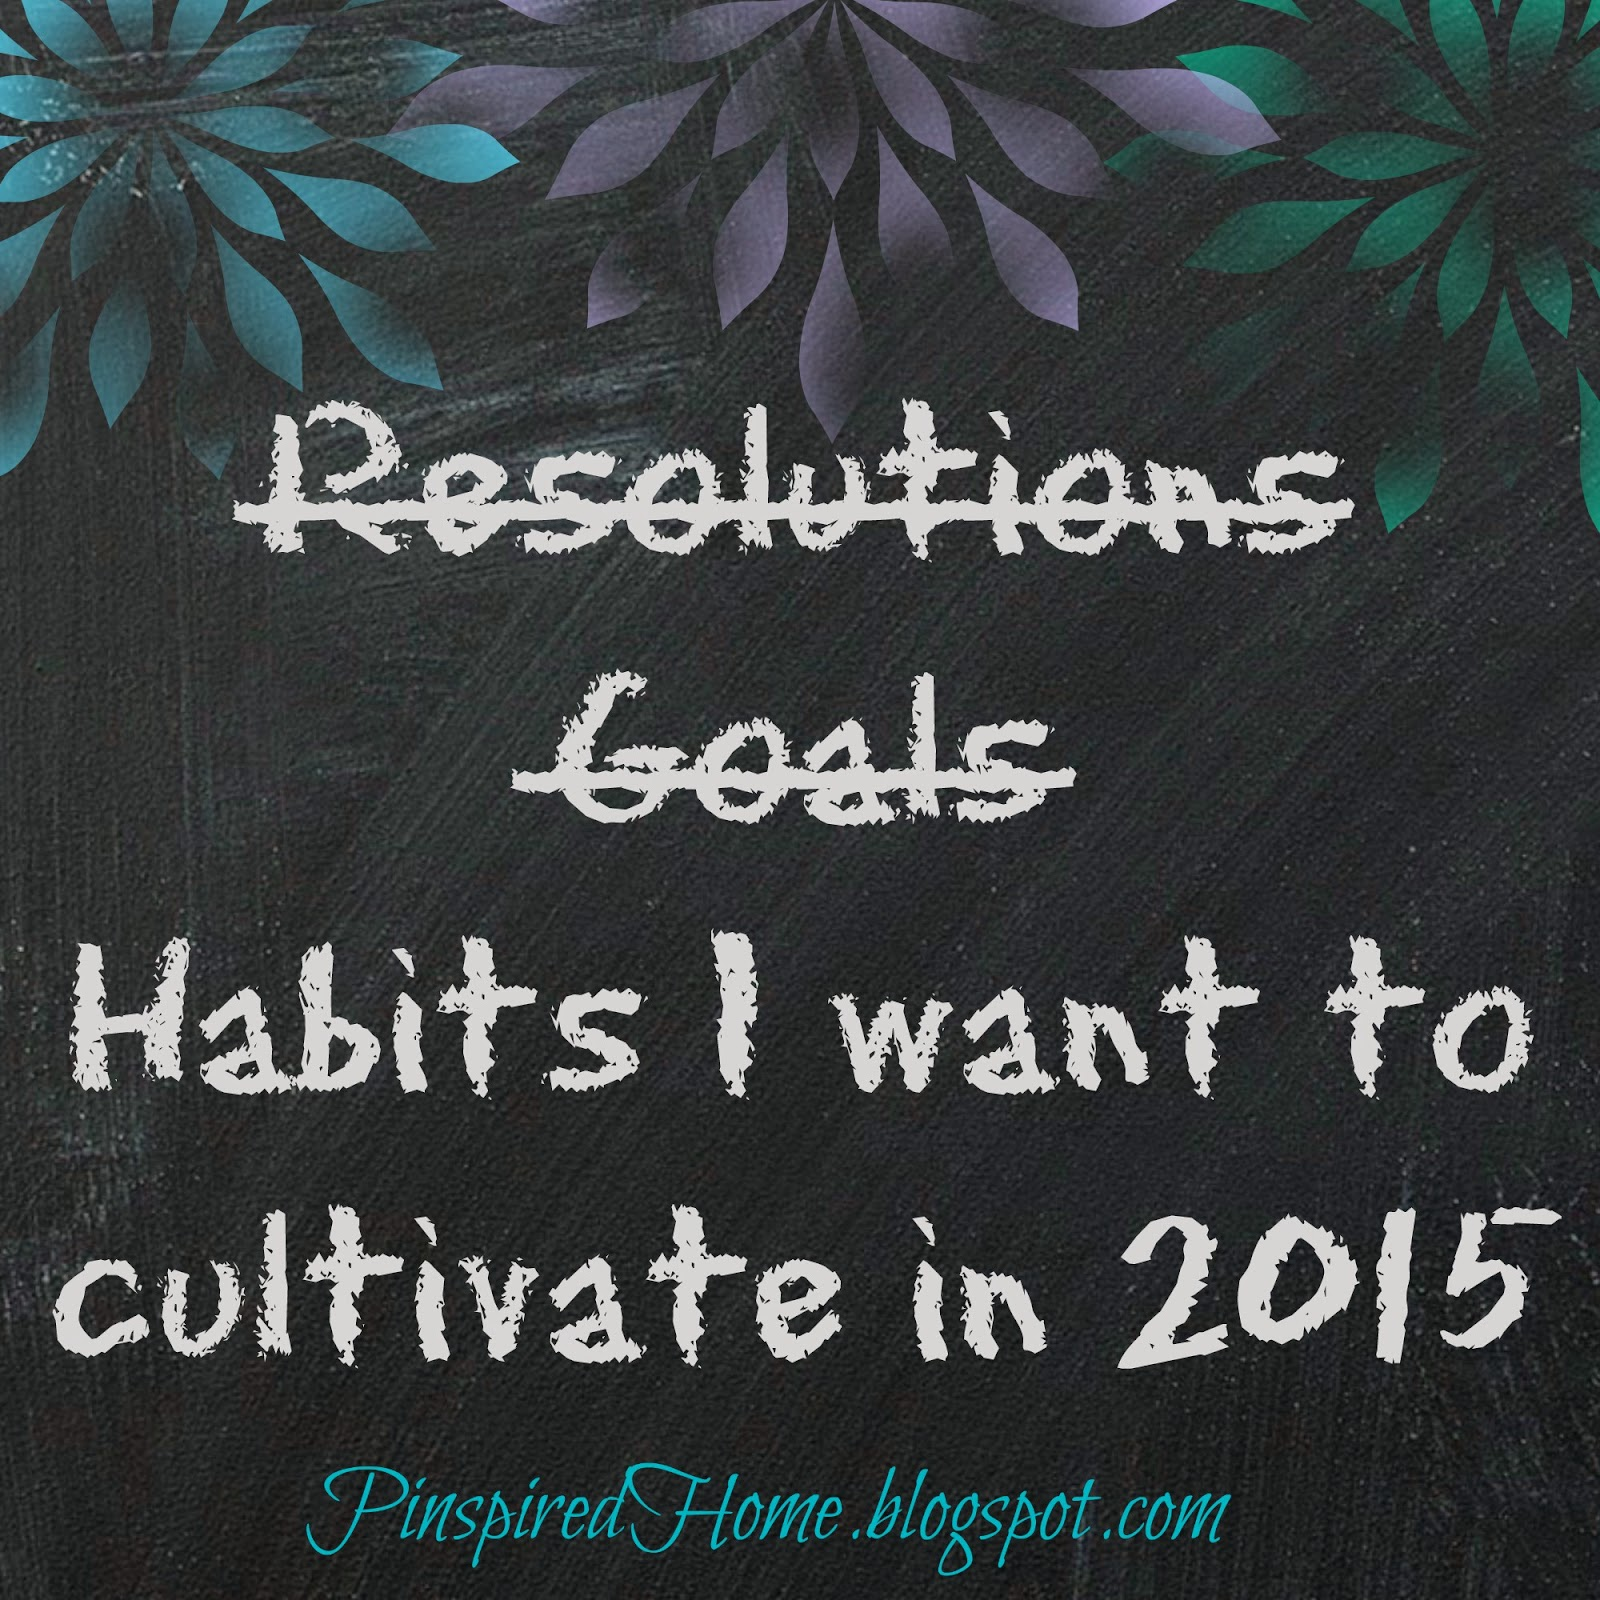 http://pinspiredhome.blogspot.com/2015/01/habits-i-want-to-cultivate-in-2015.html